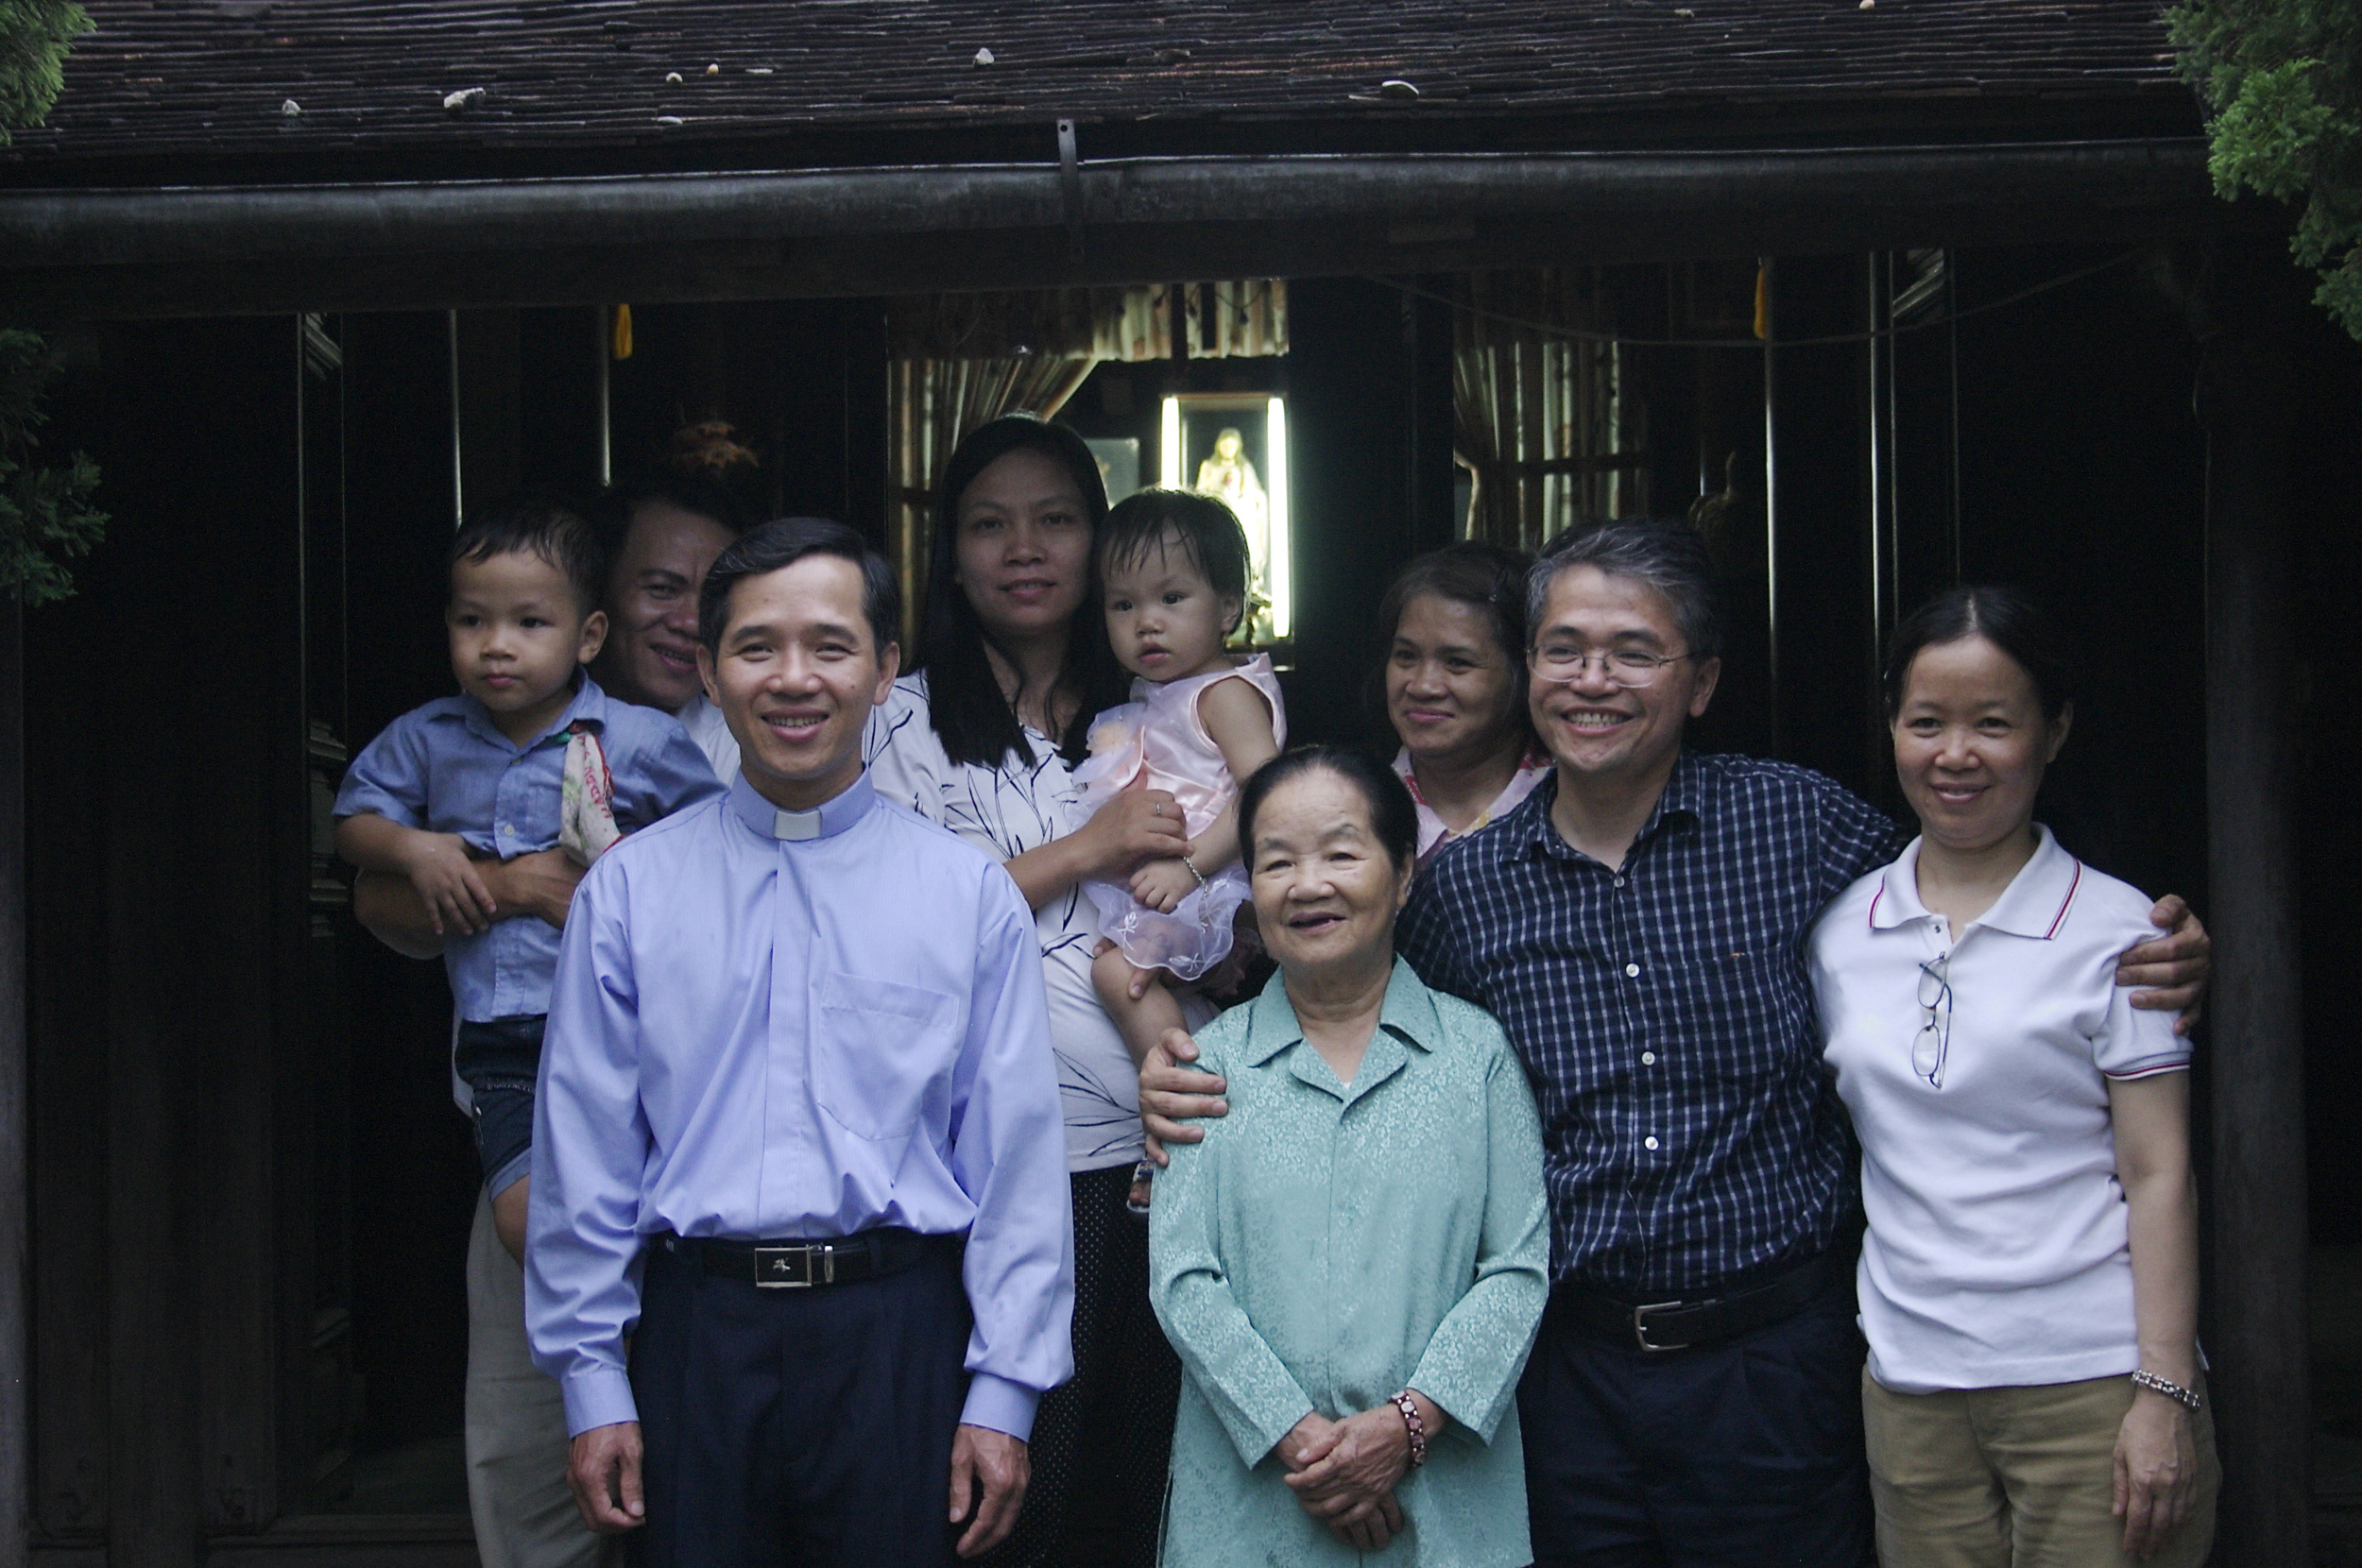 Fr. Francis and family, generous beyond measure.